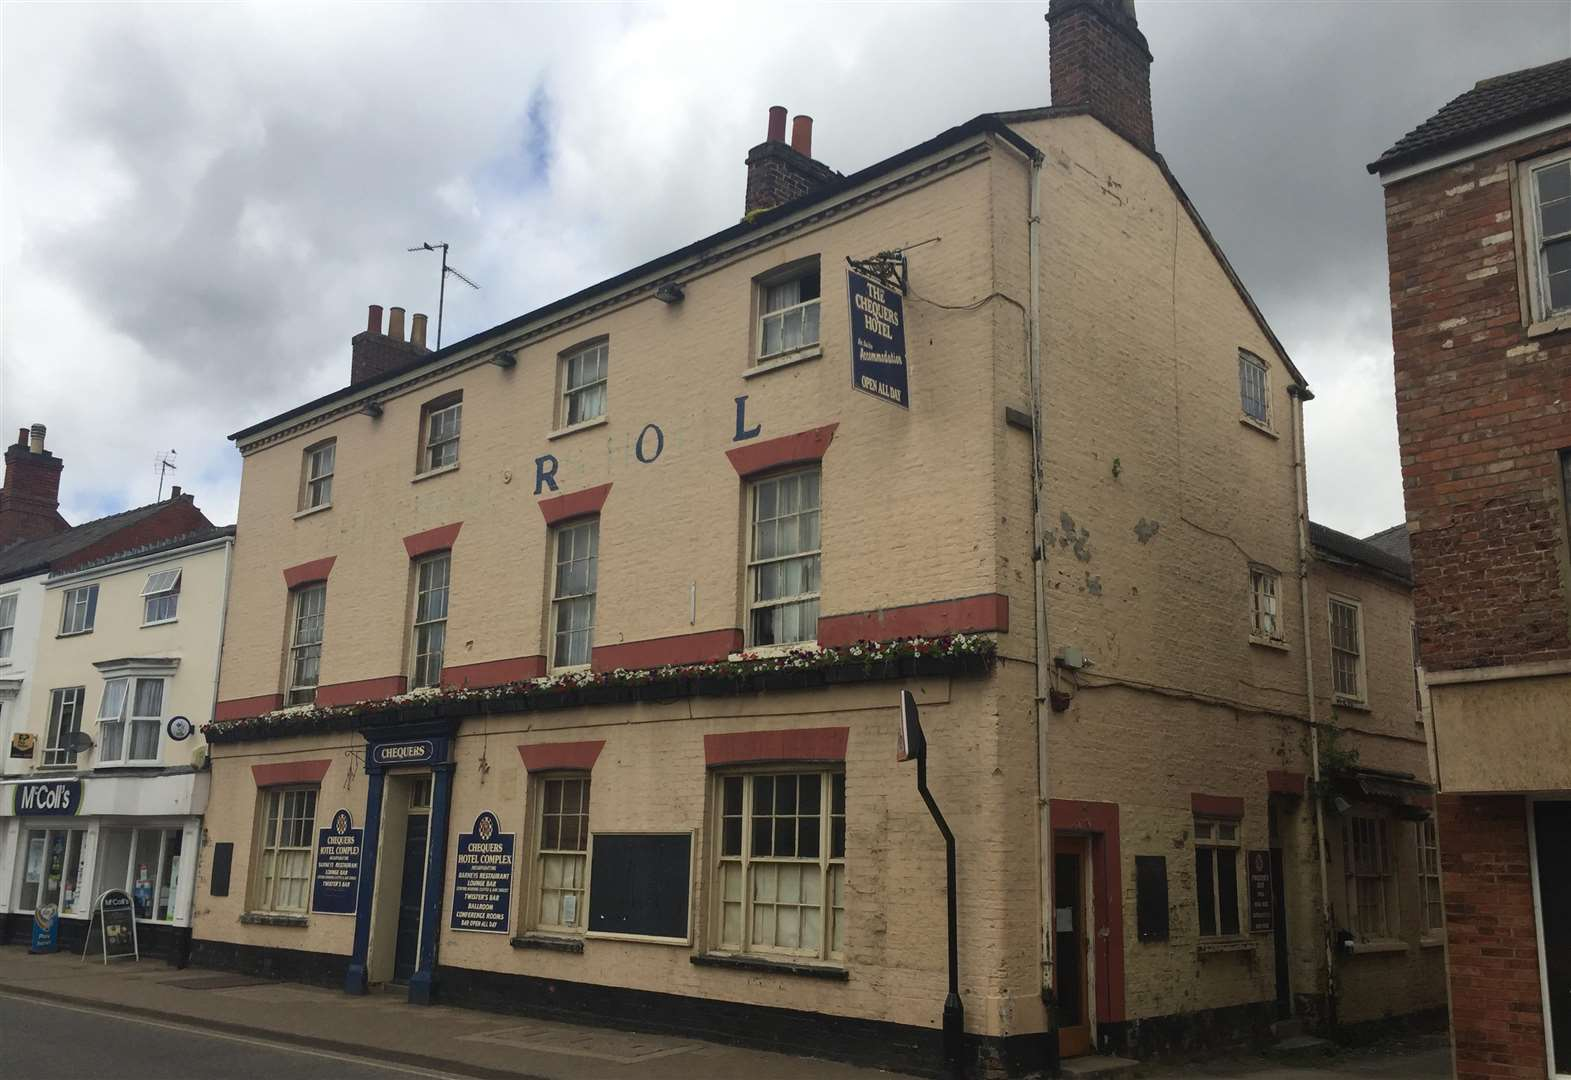 Holbeach Chequers landlord didn't licence property as 'house of multiple occupation'